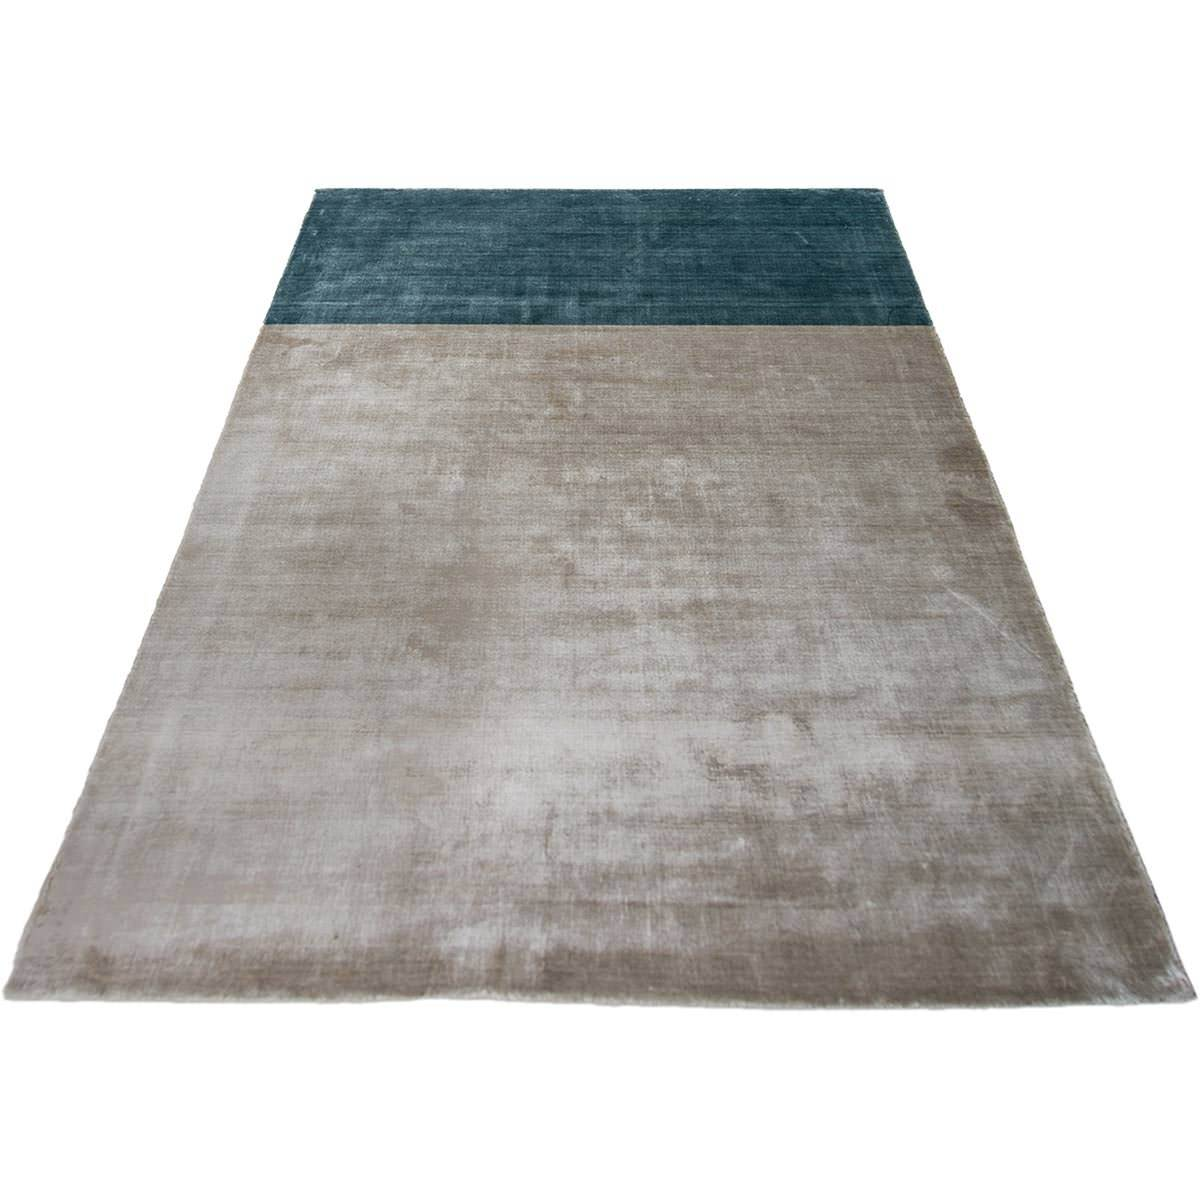 Tuscany Rug 02 Grey/Blue 2